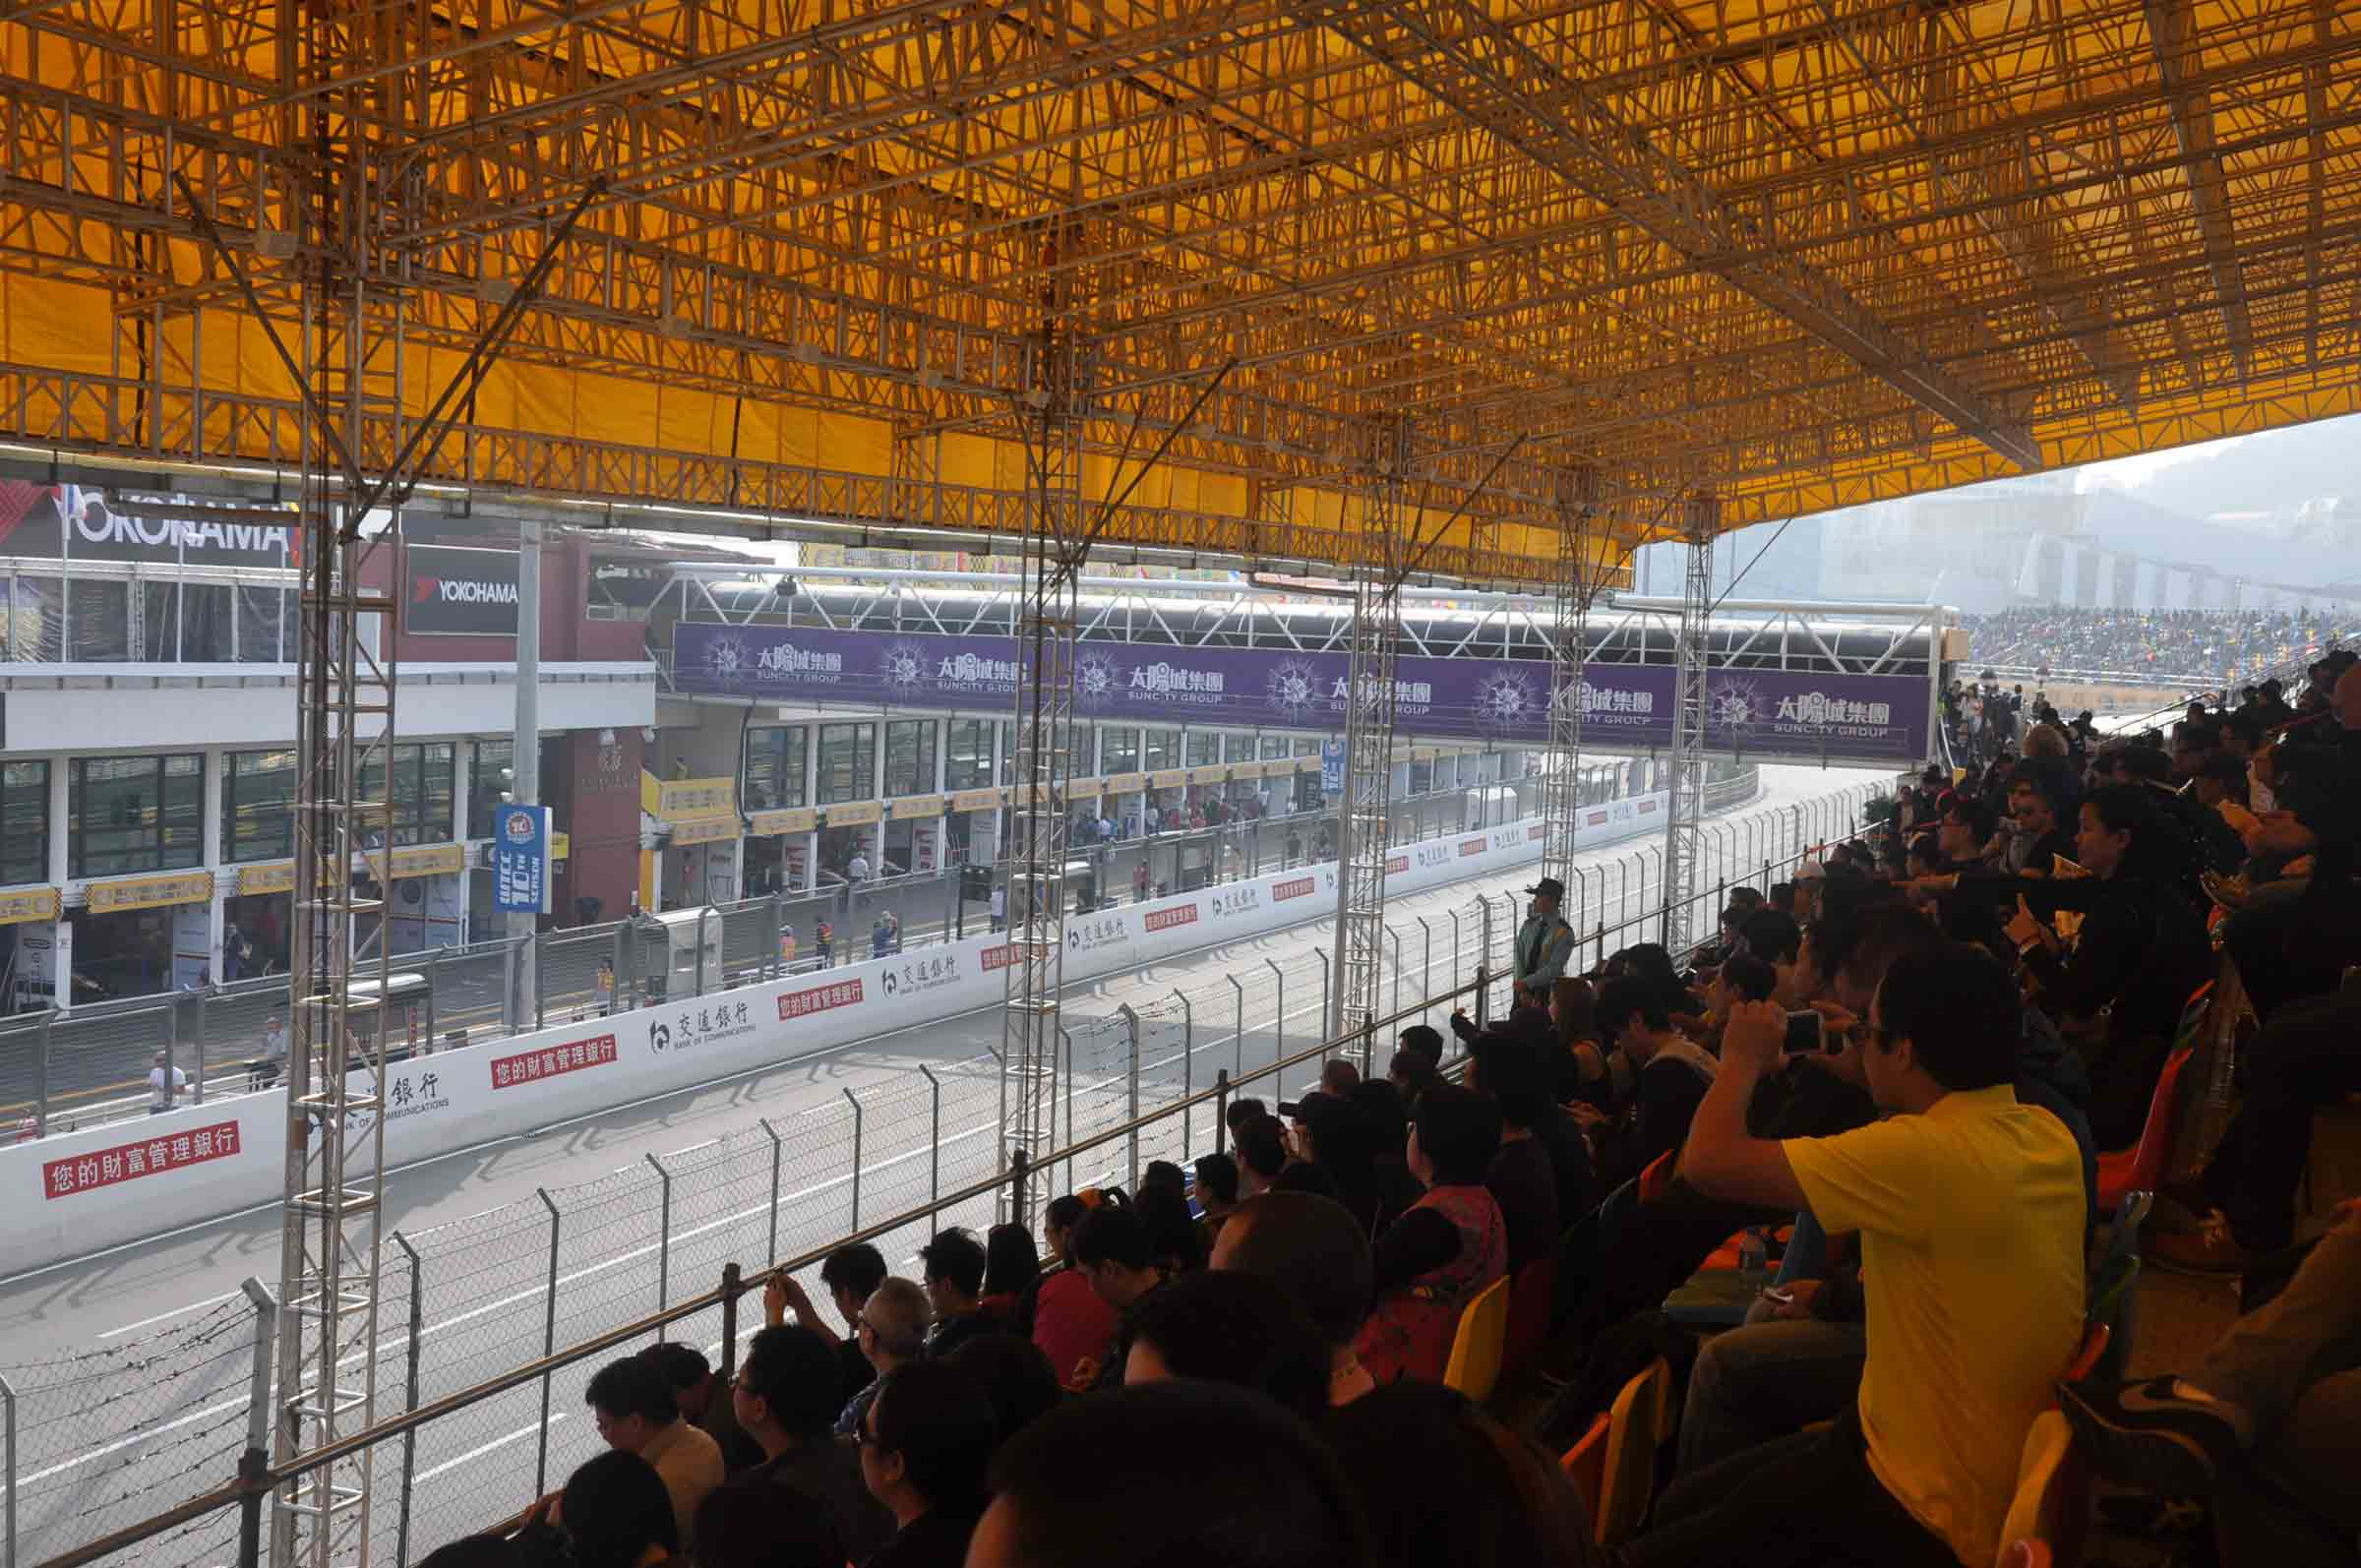 F3 Macau Grand Prix Race Grandstand Seats